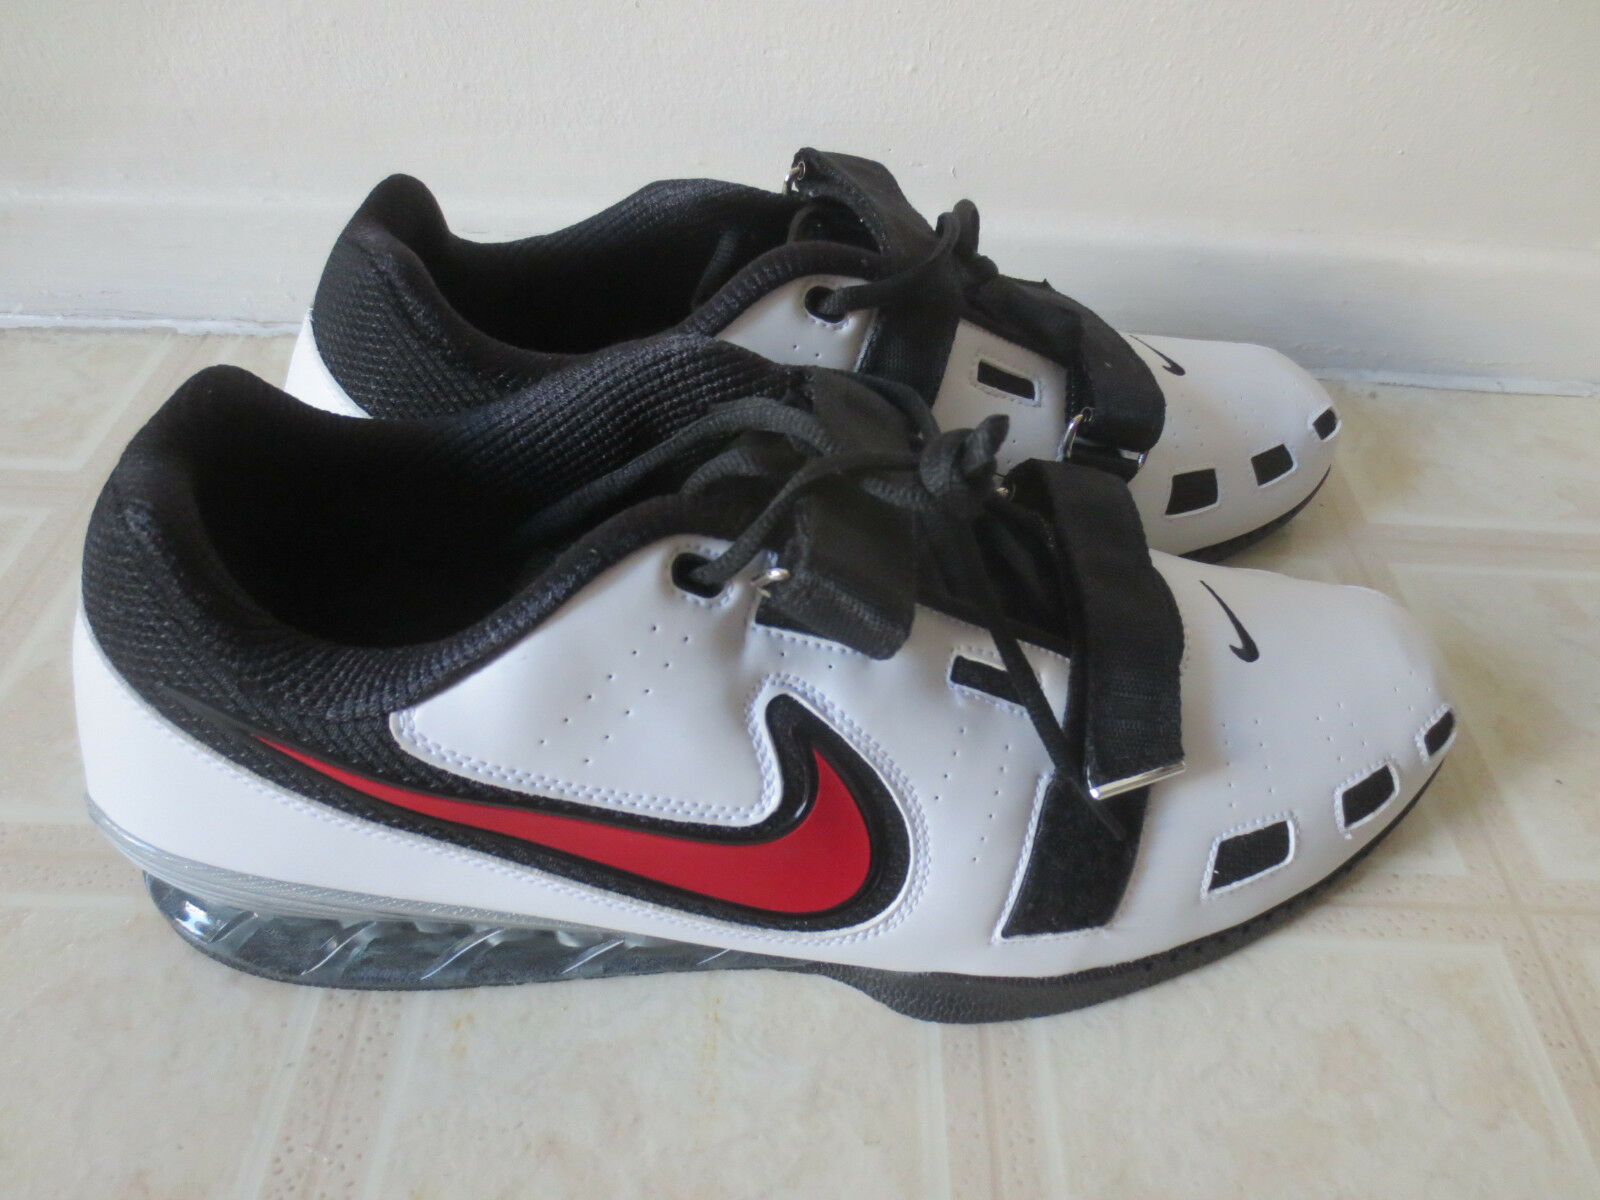 Brand new Nike Romaleos 2 weightlifting powerlifting shoes. Size 17